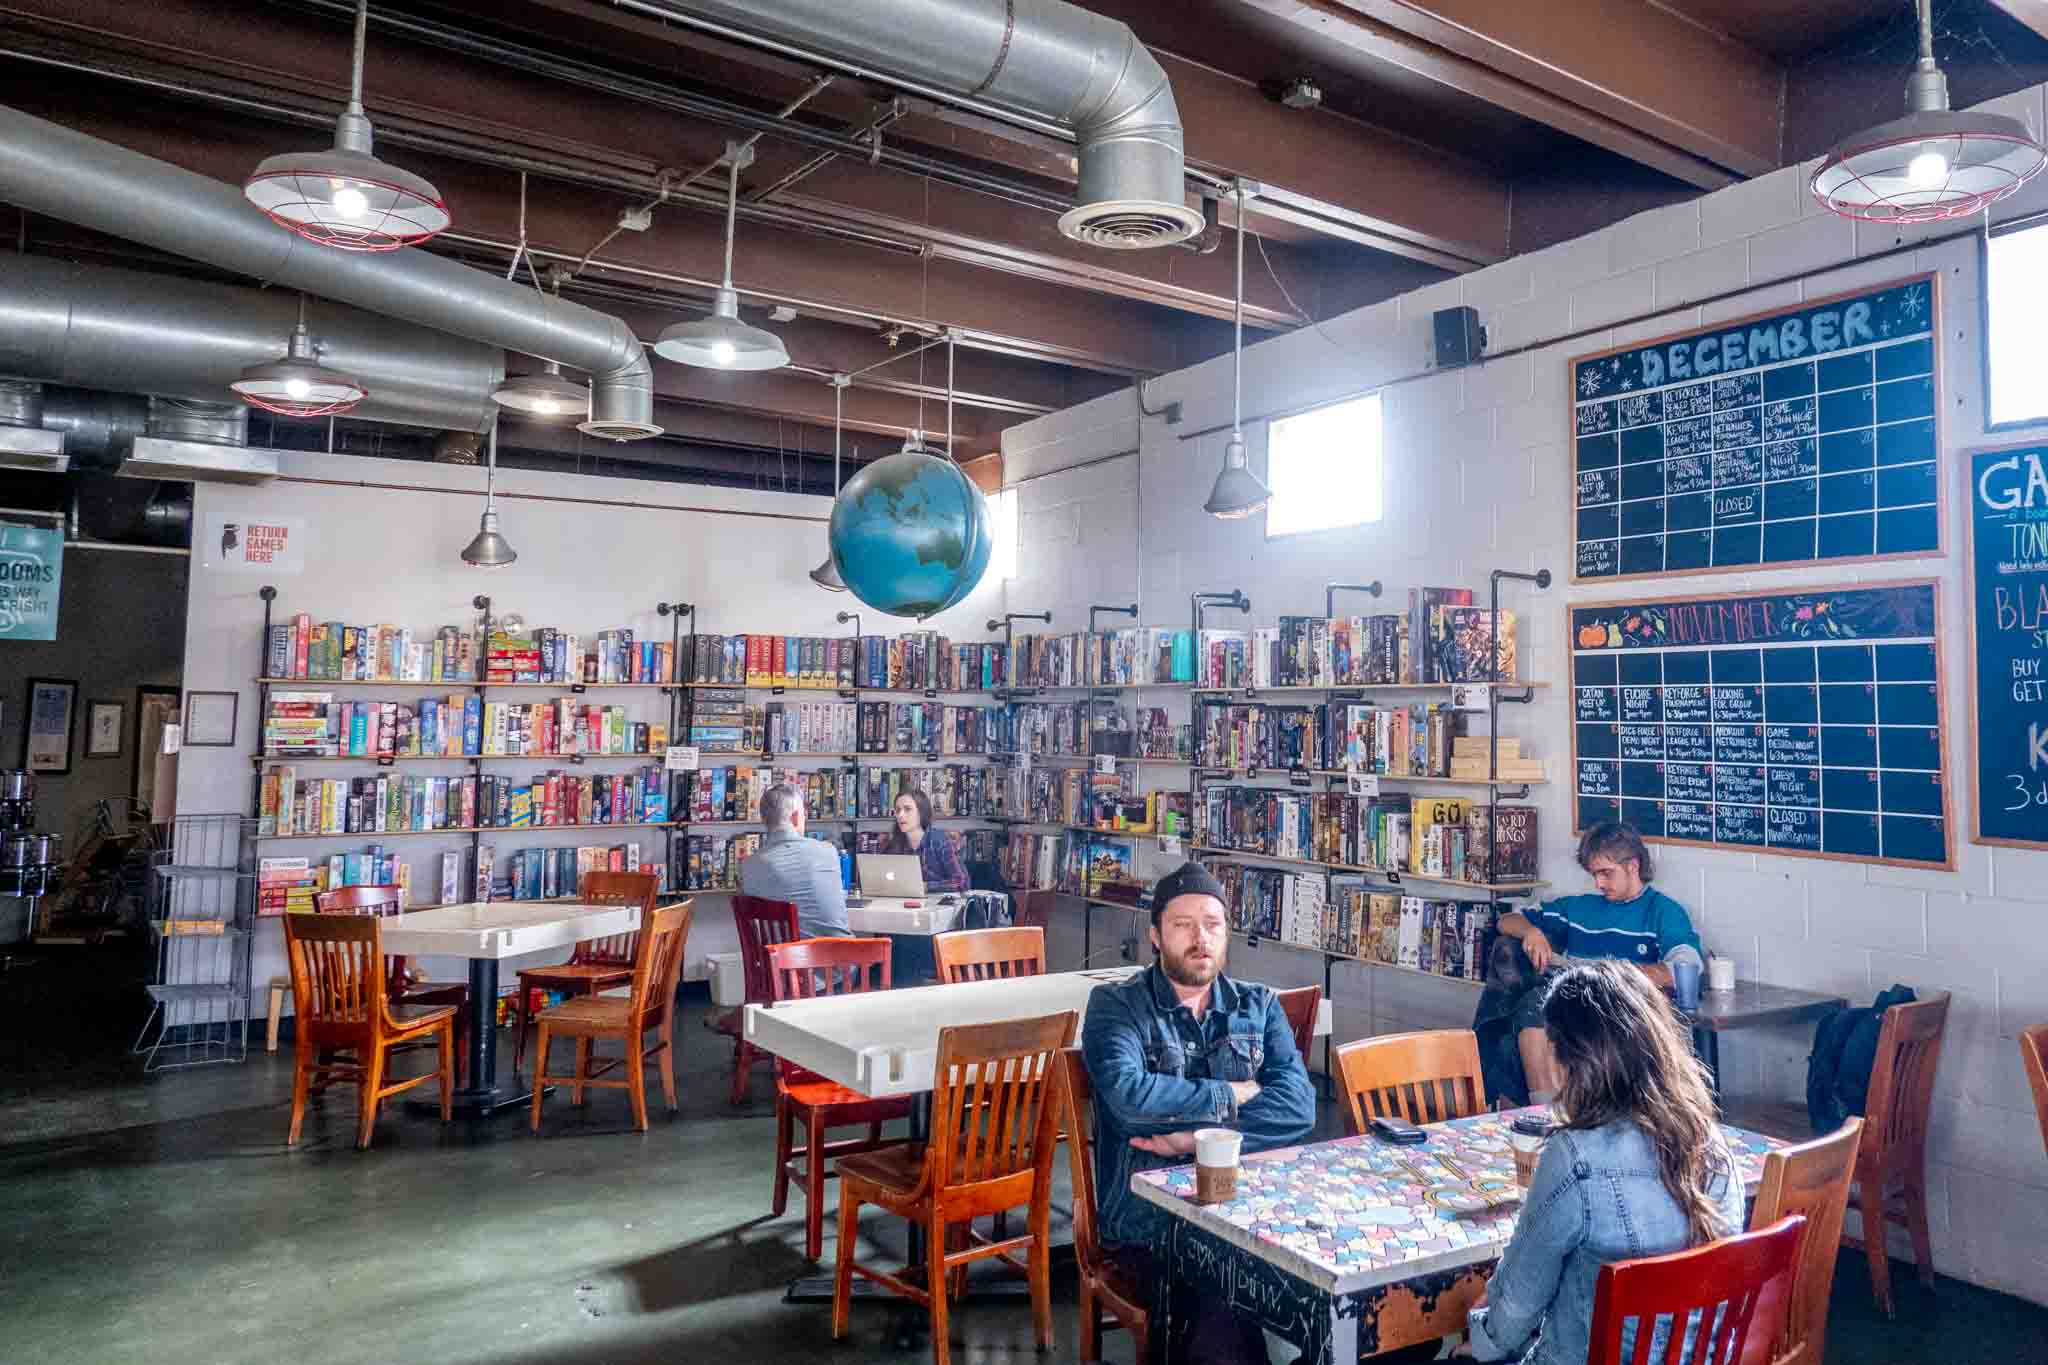 People at tables by a wall of board games